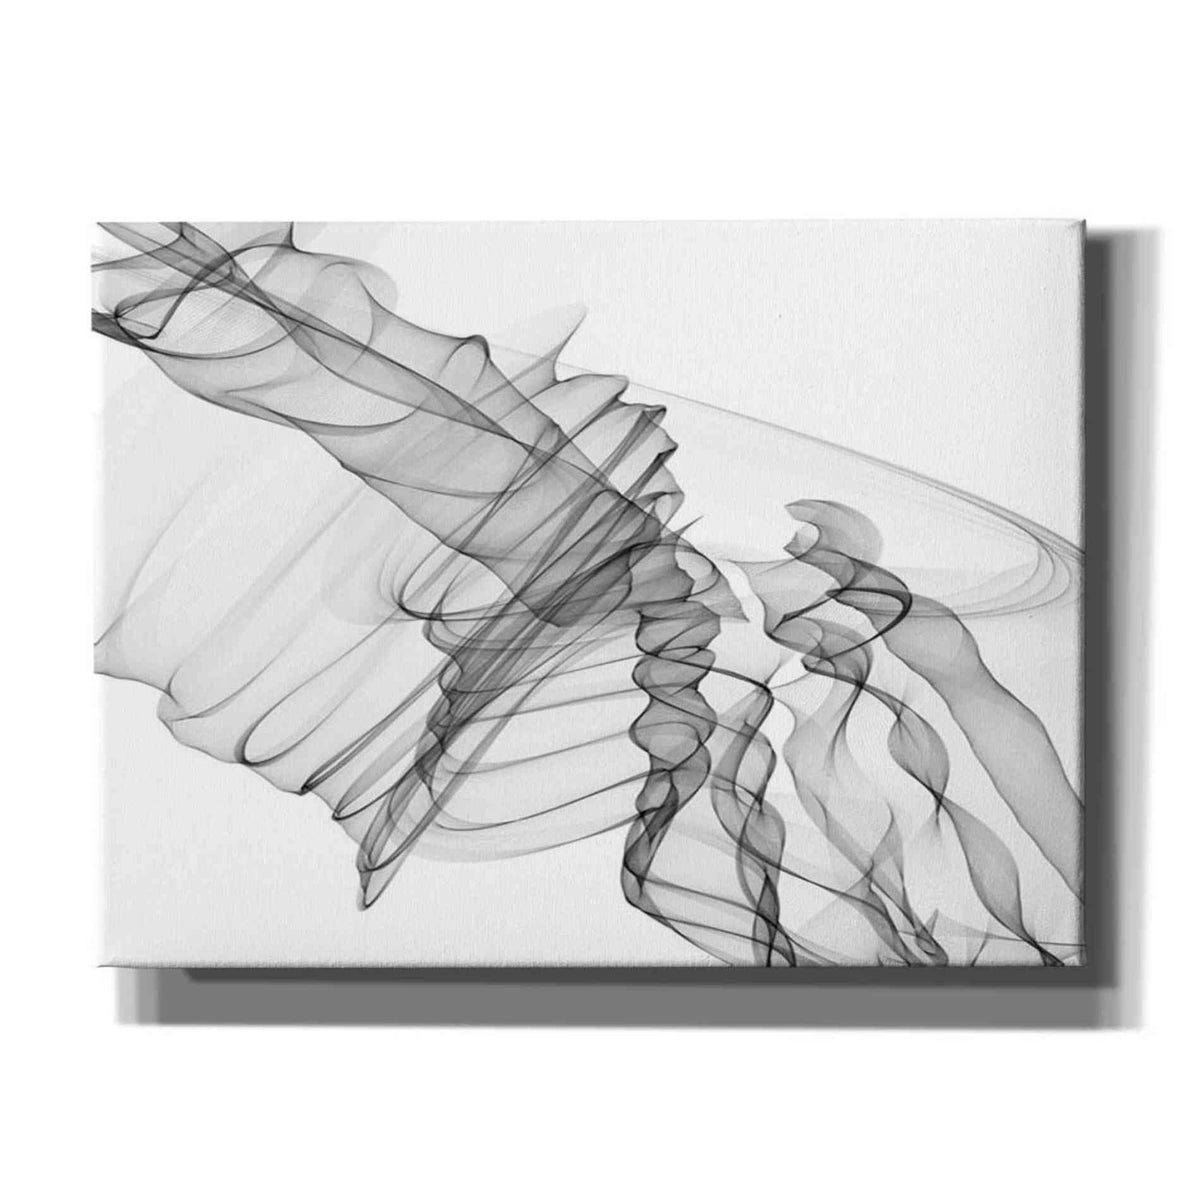 Epic Graffiti 'Abstract Black and White 19-22-36' by Irena Orlov, Giclee Canvas Wall Art